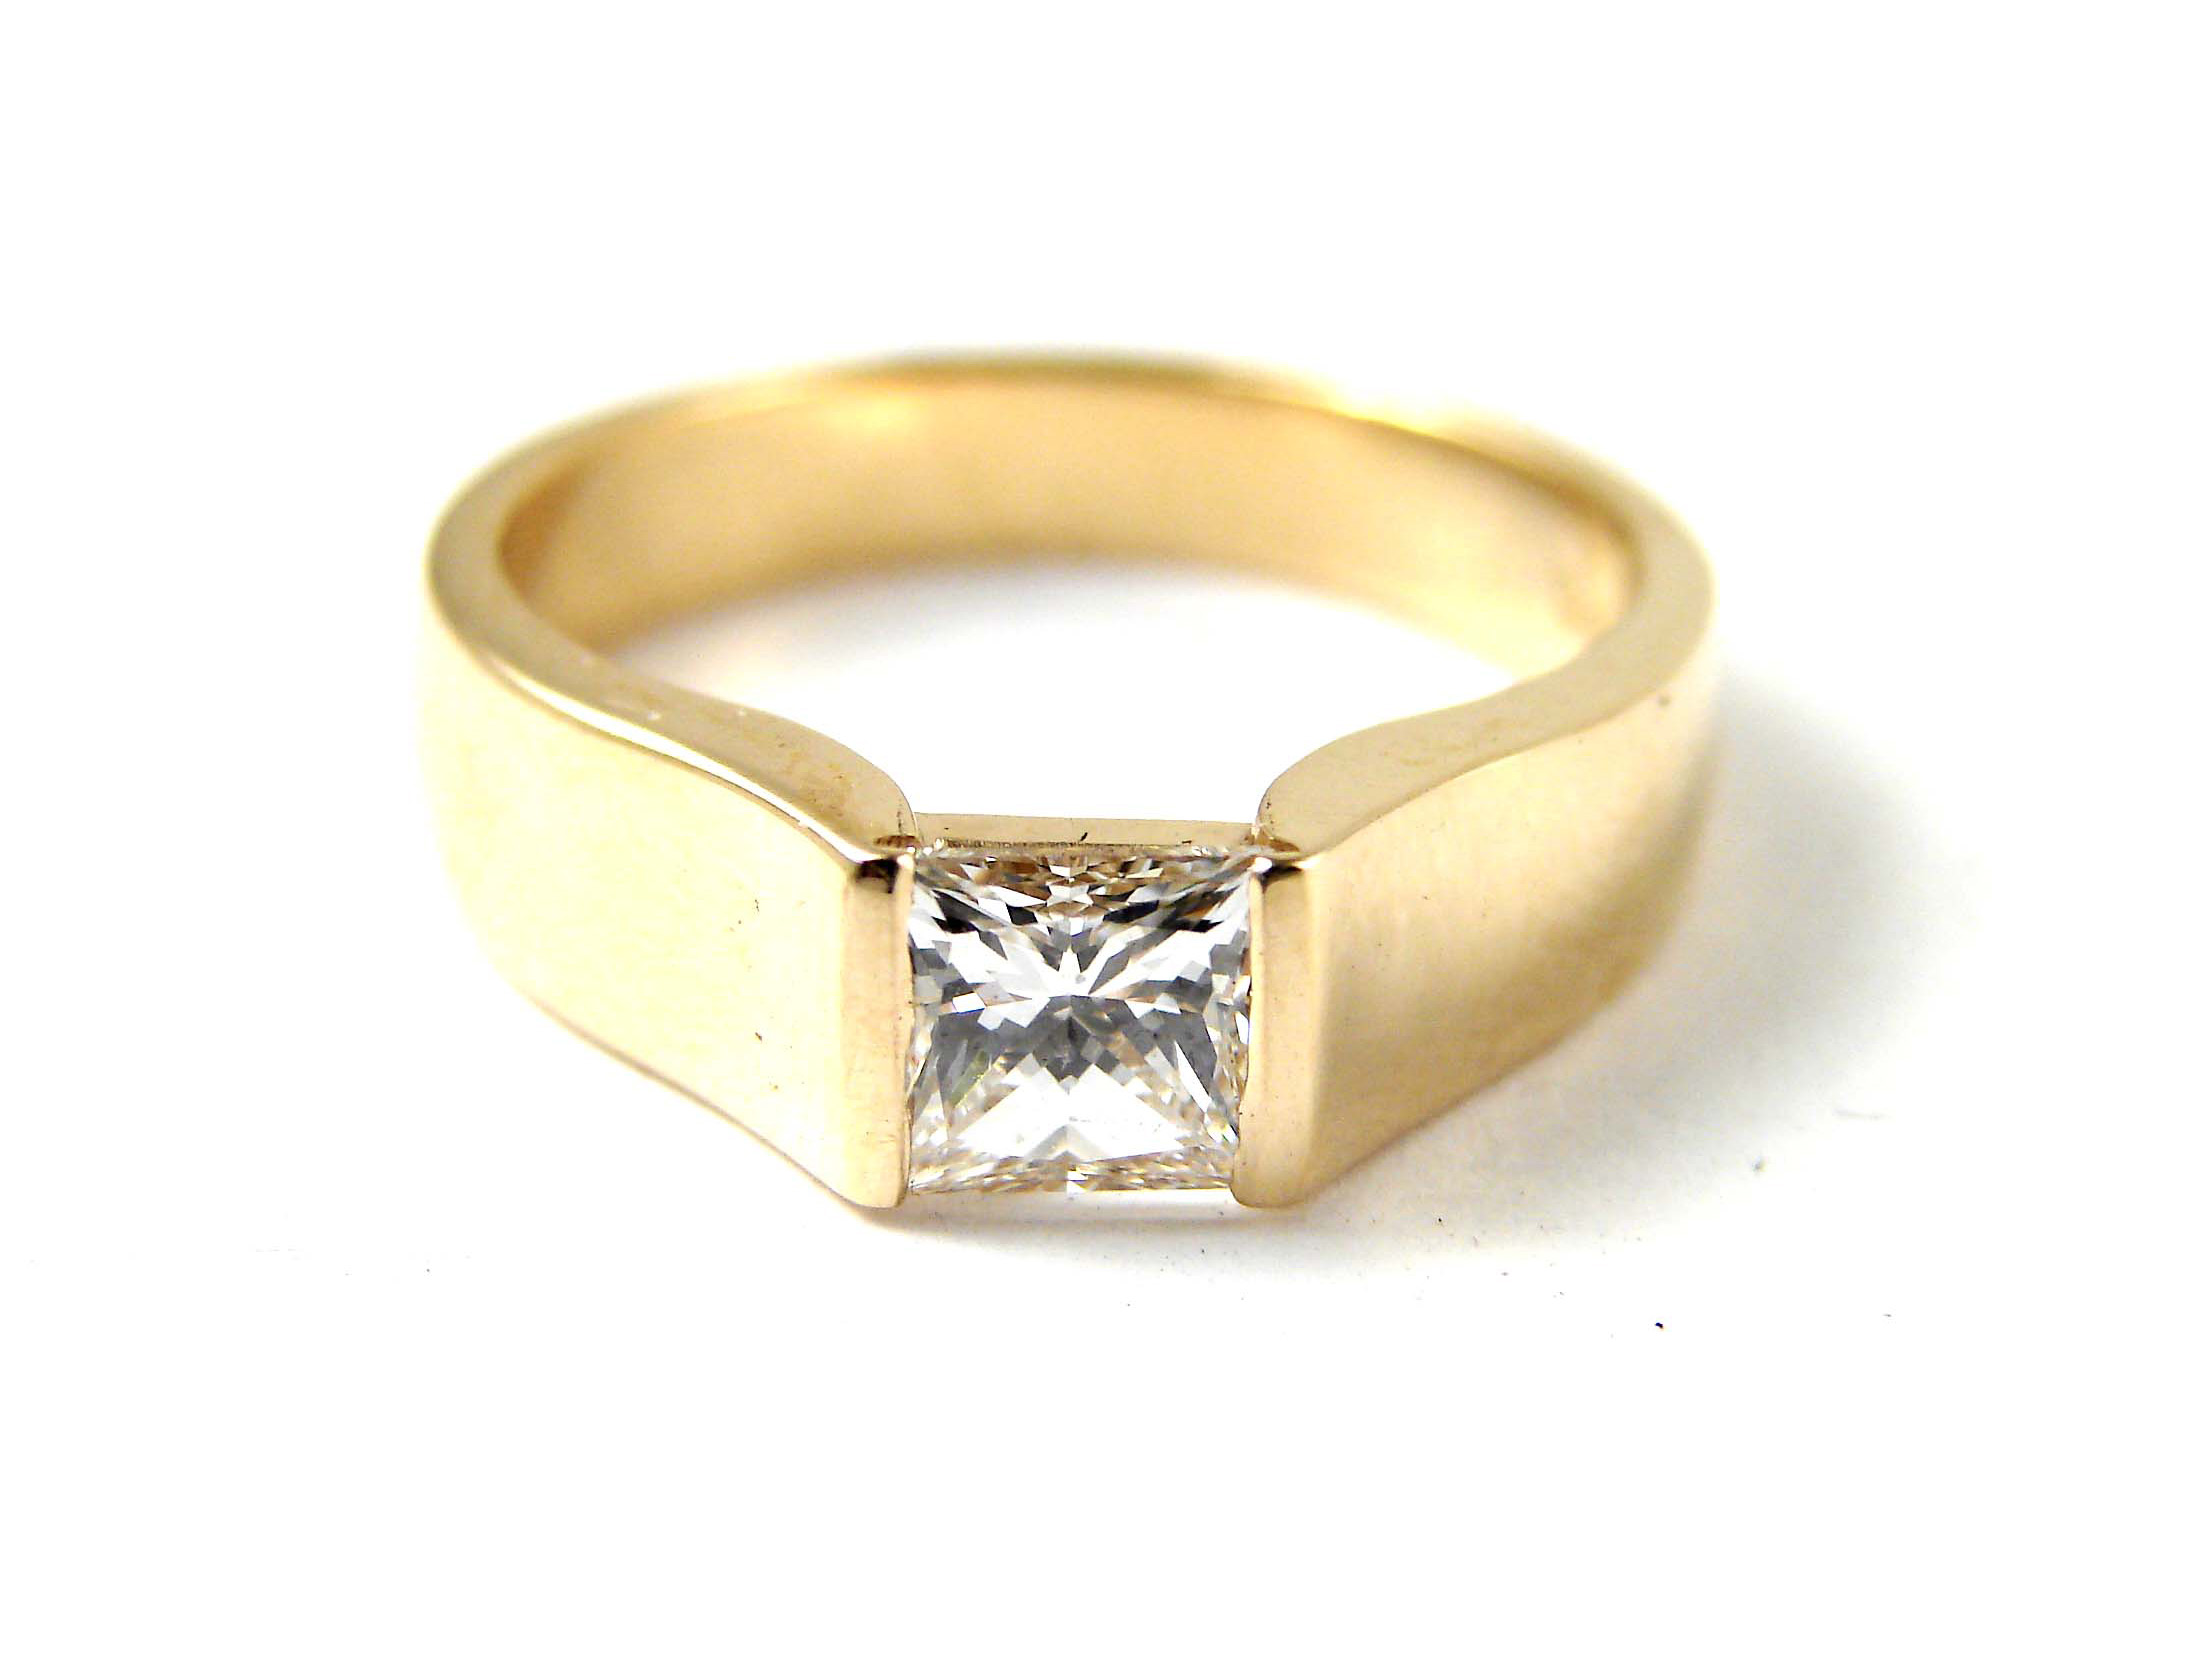 0.70ct princess cut diamond in a 18kt yellow gold tension set look ring.  Starting at $3900 for this stone size and quality  Can be customizable with any stone, size, metal etc.